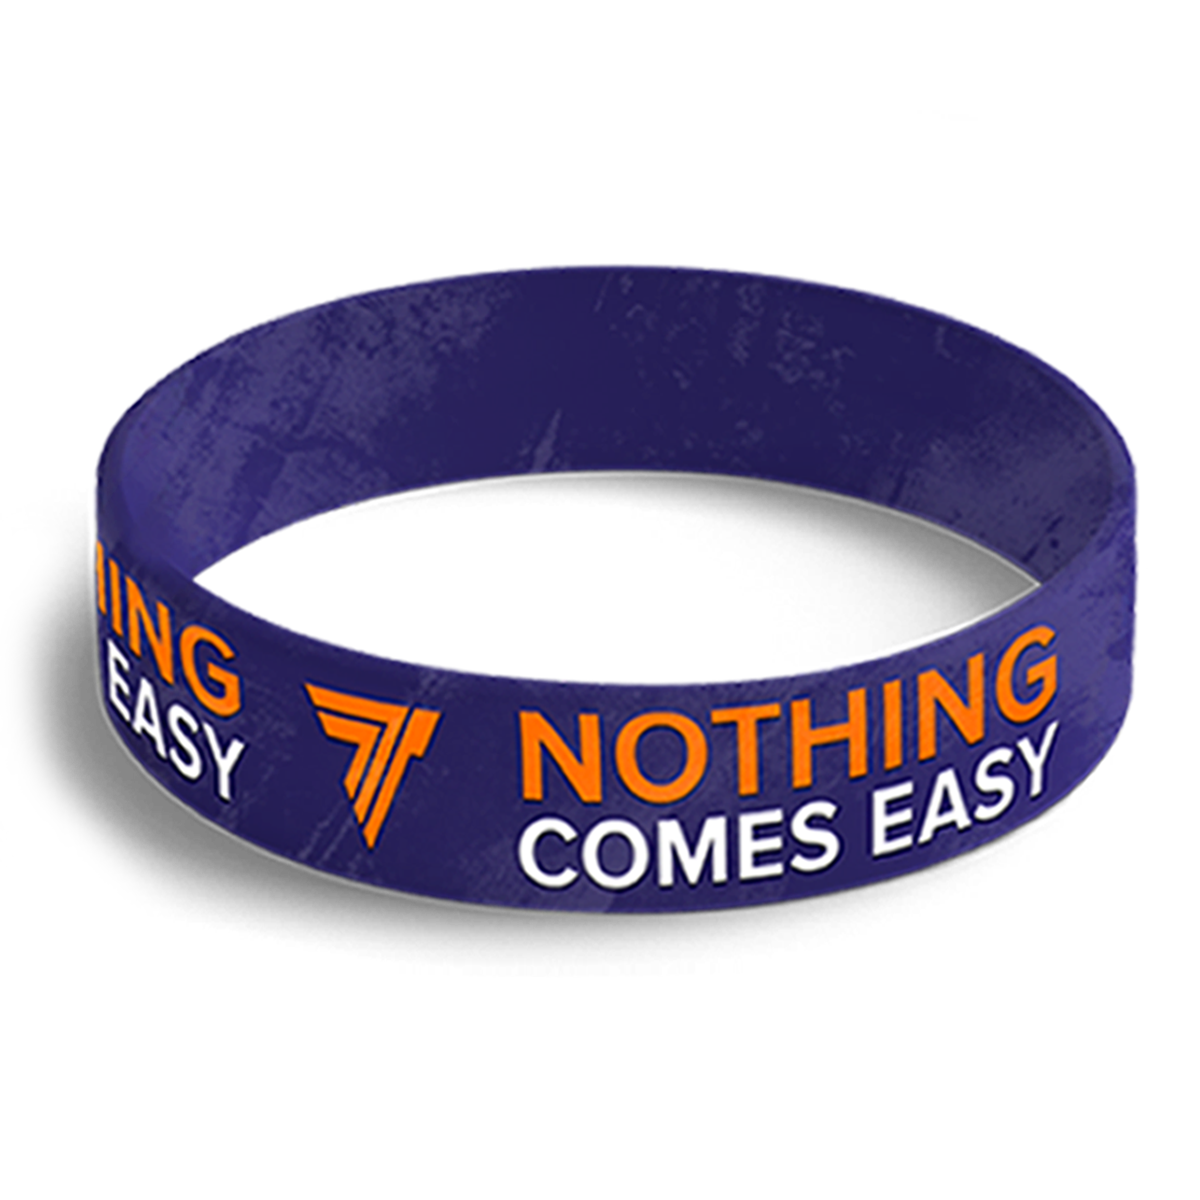 WRISTBAND 058 - NOTHING COMES EASY - NAVY-BLUE Glowne